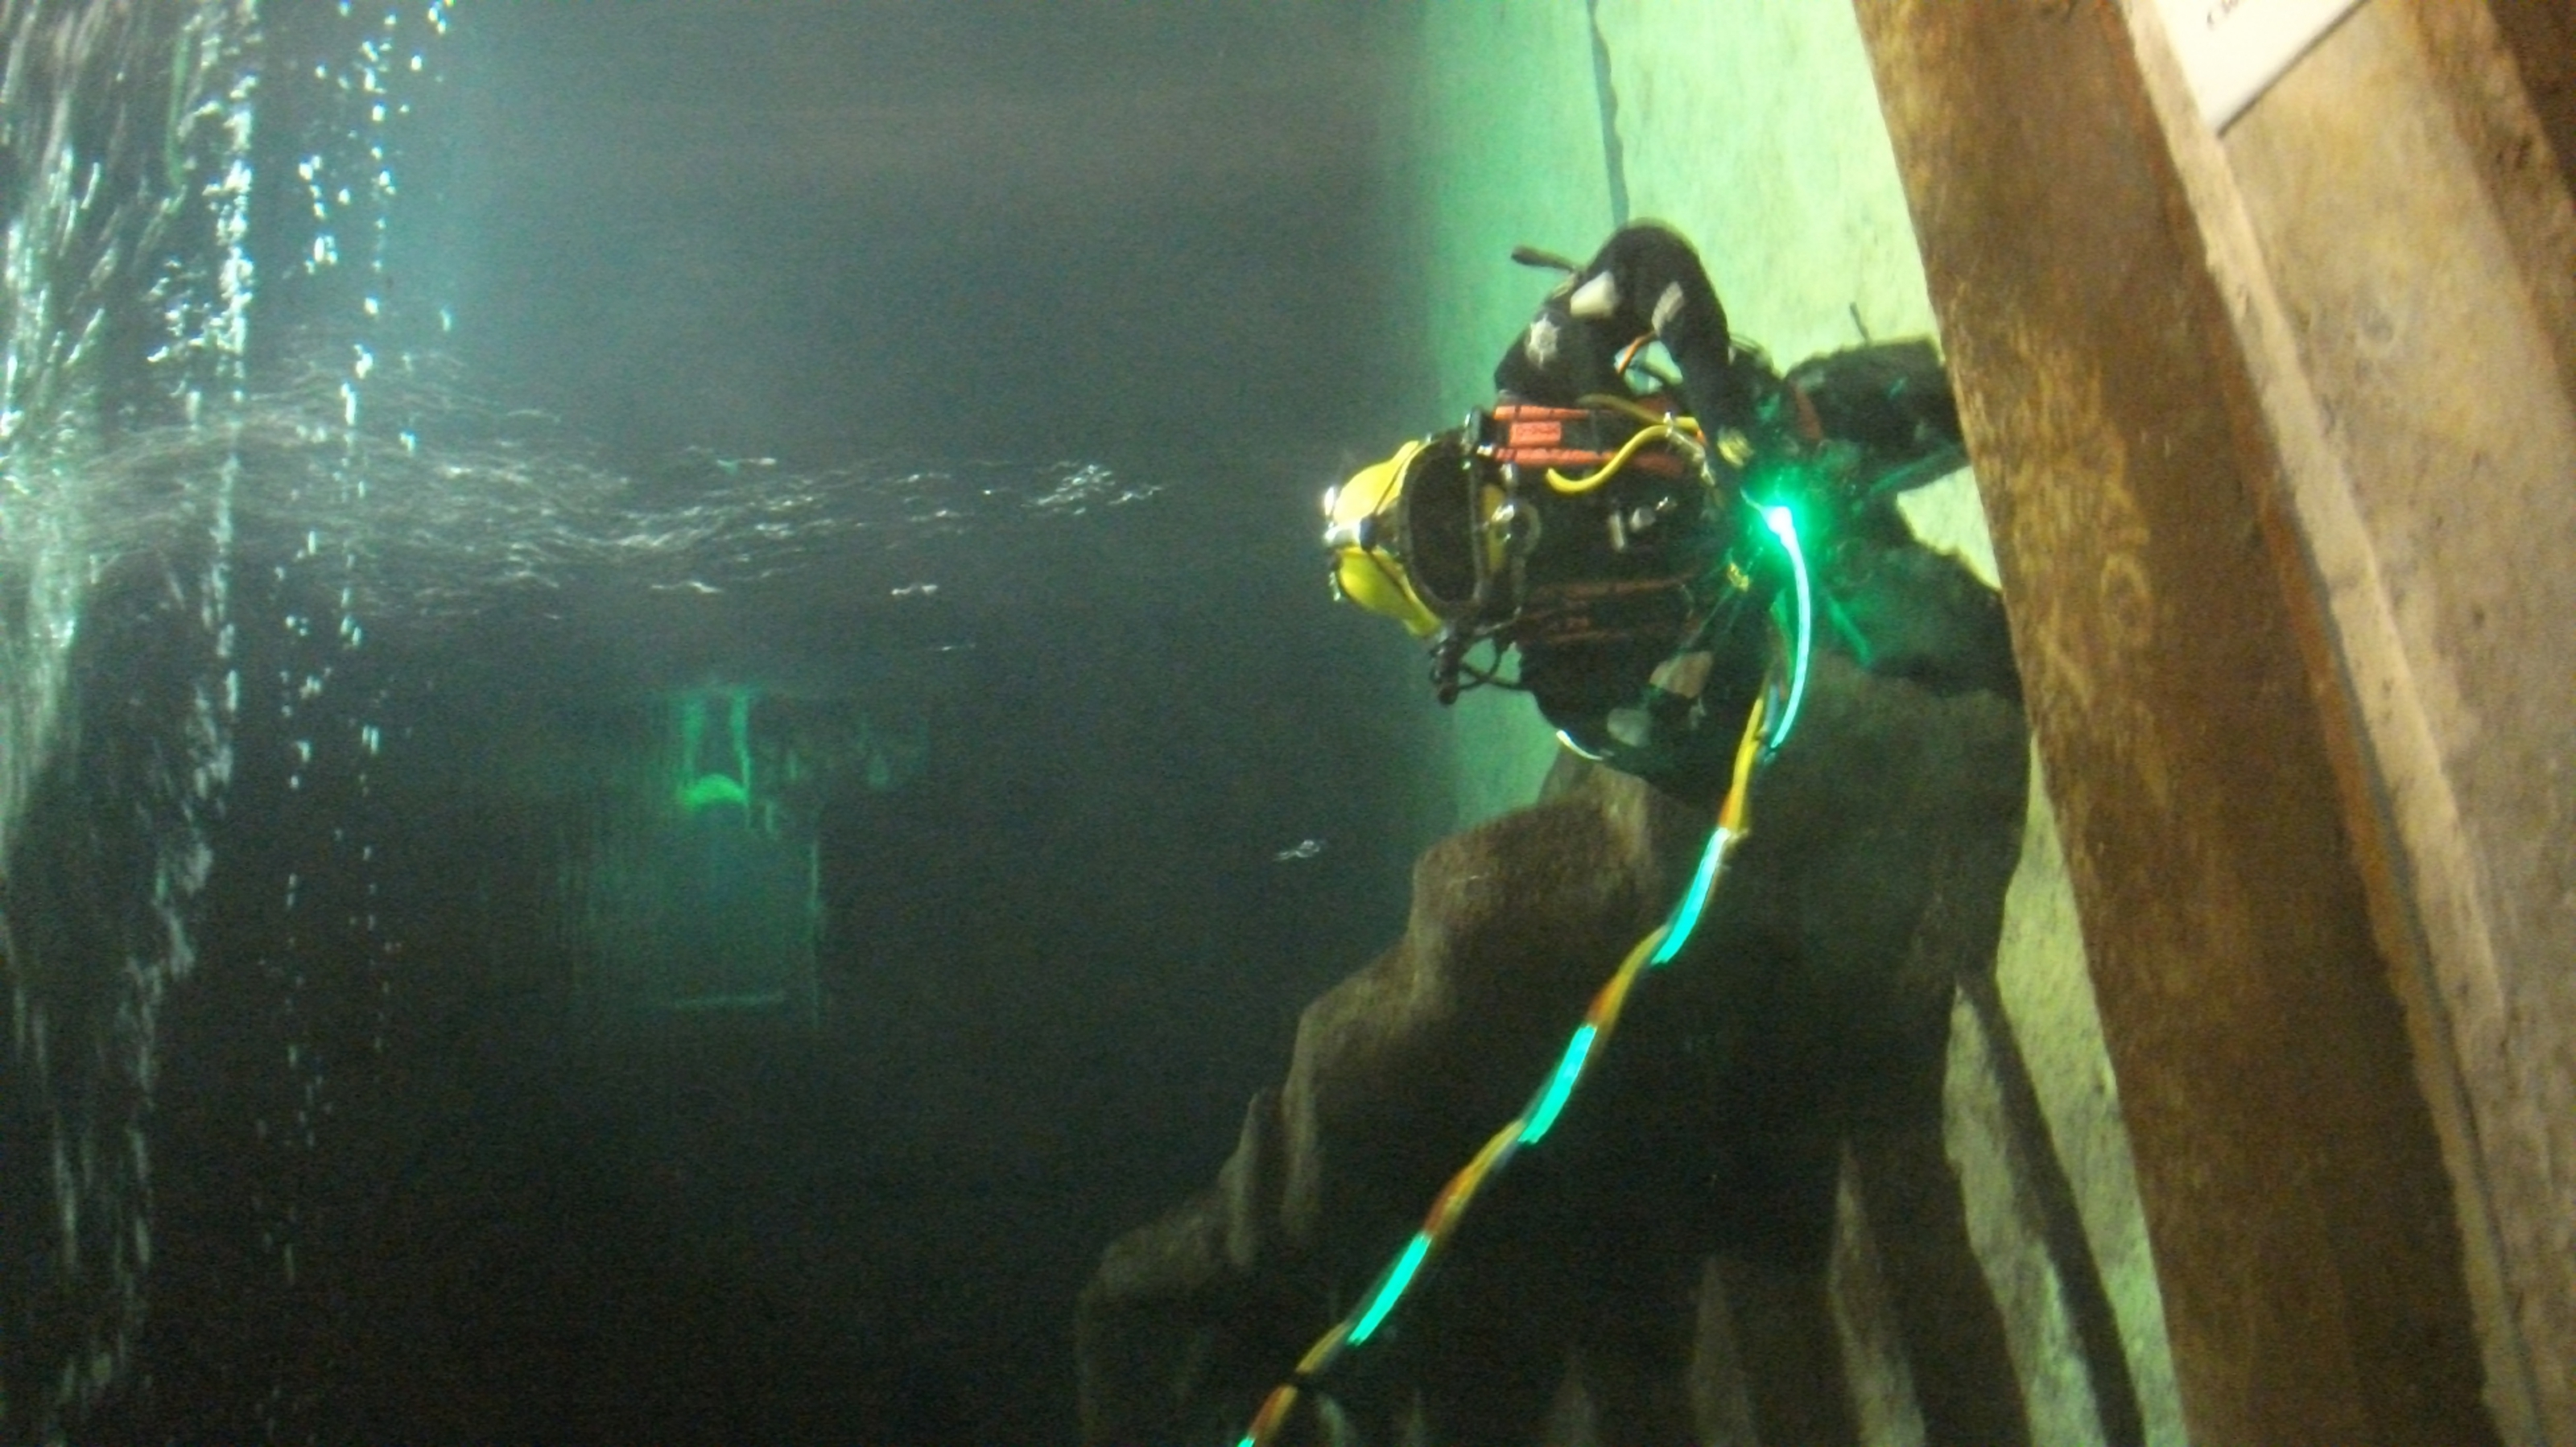 A diver using PhotoSynergy's light path